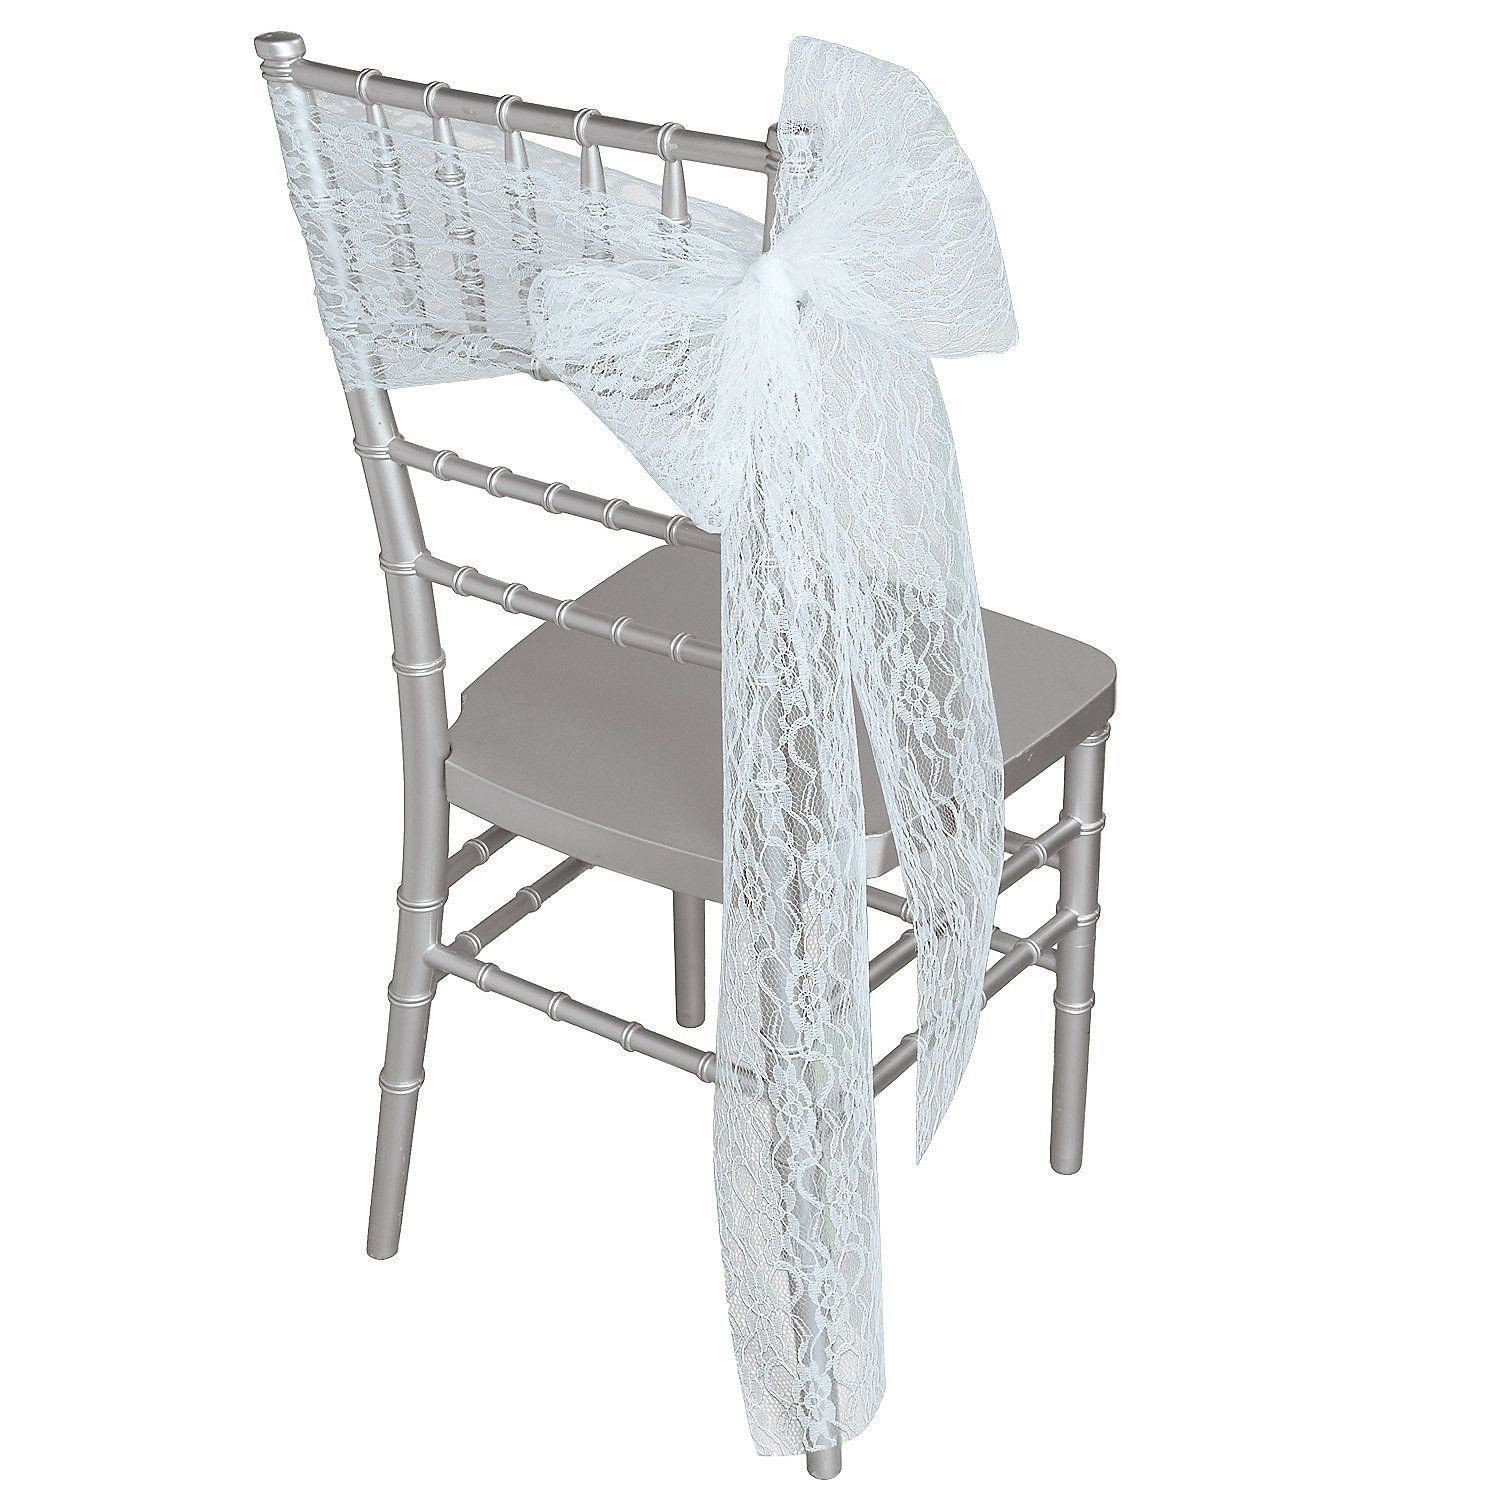 White Lace Ribbon Chair Cover | Lace ribbon, Chair covers and White lace